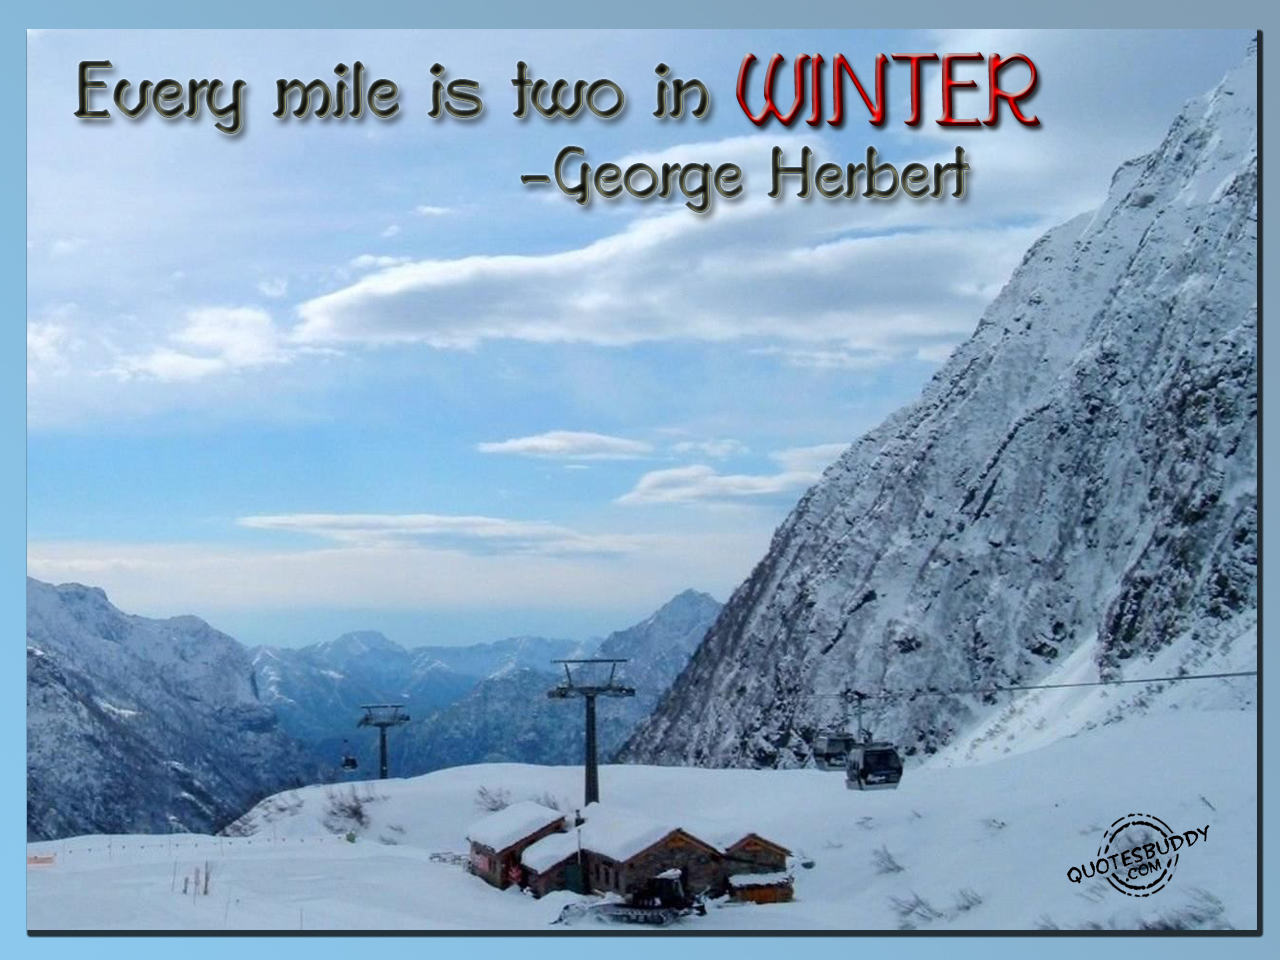 Winter Weather Funny Quotes Quotesgram: Funny Quotes Winter Humor. QuotesGram